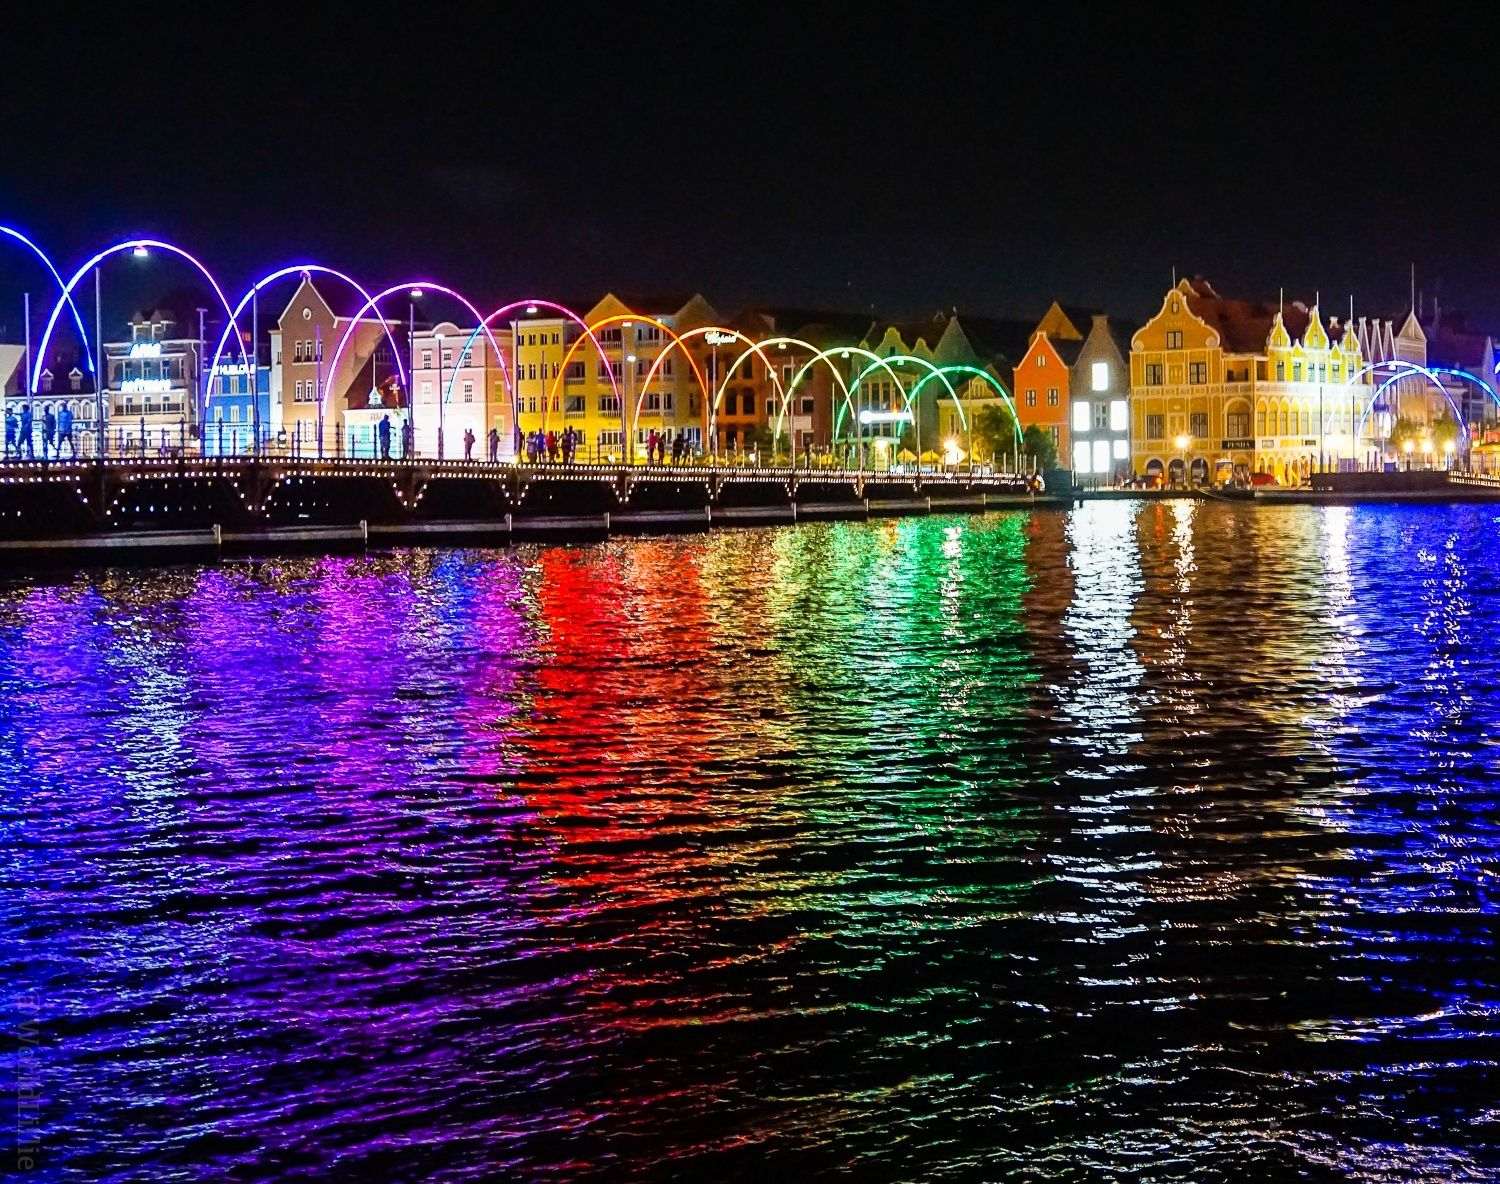 The Best Place To Travel This Year For Me Was Curacao Best Places To Travel Curacao Island Cool Places To Visit